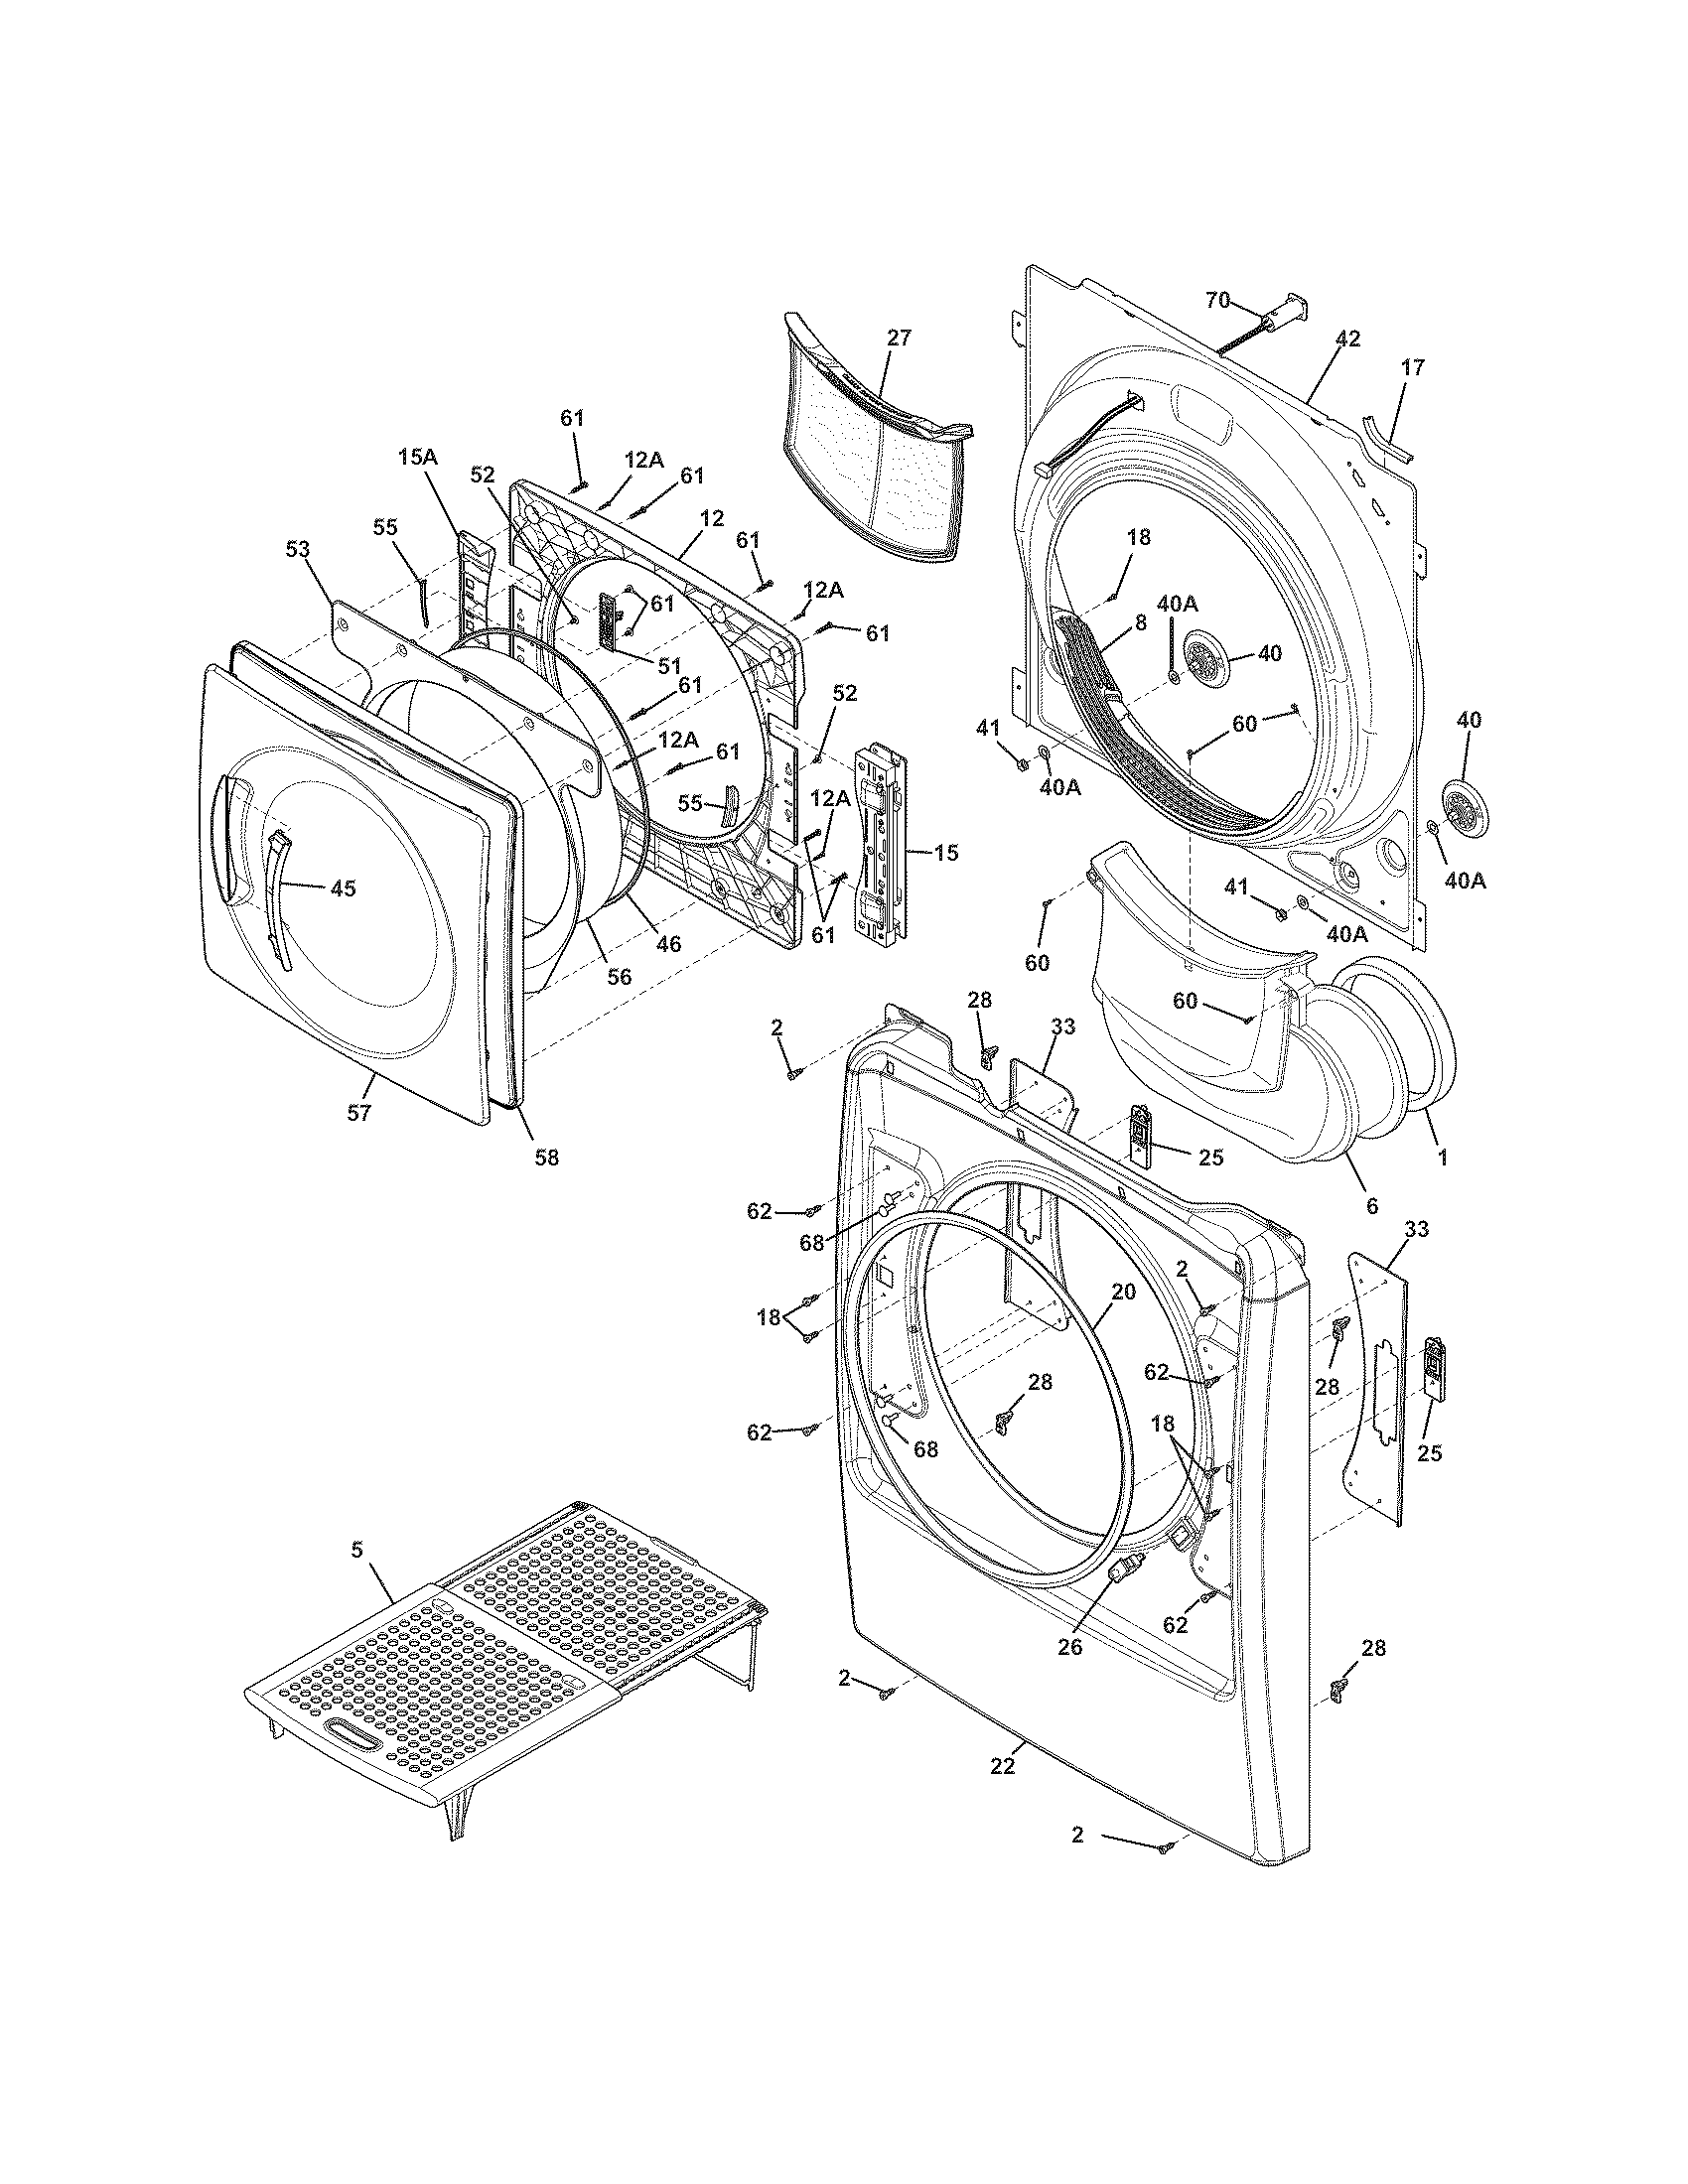 Wiring Diagram For Kenmore Gas Dryer